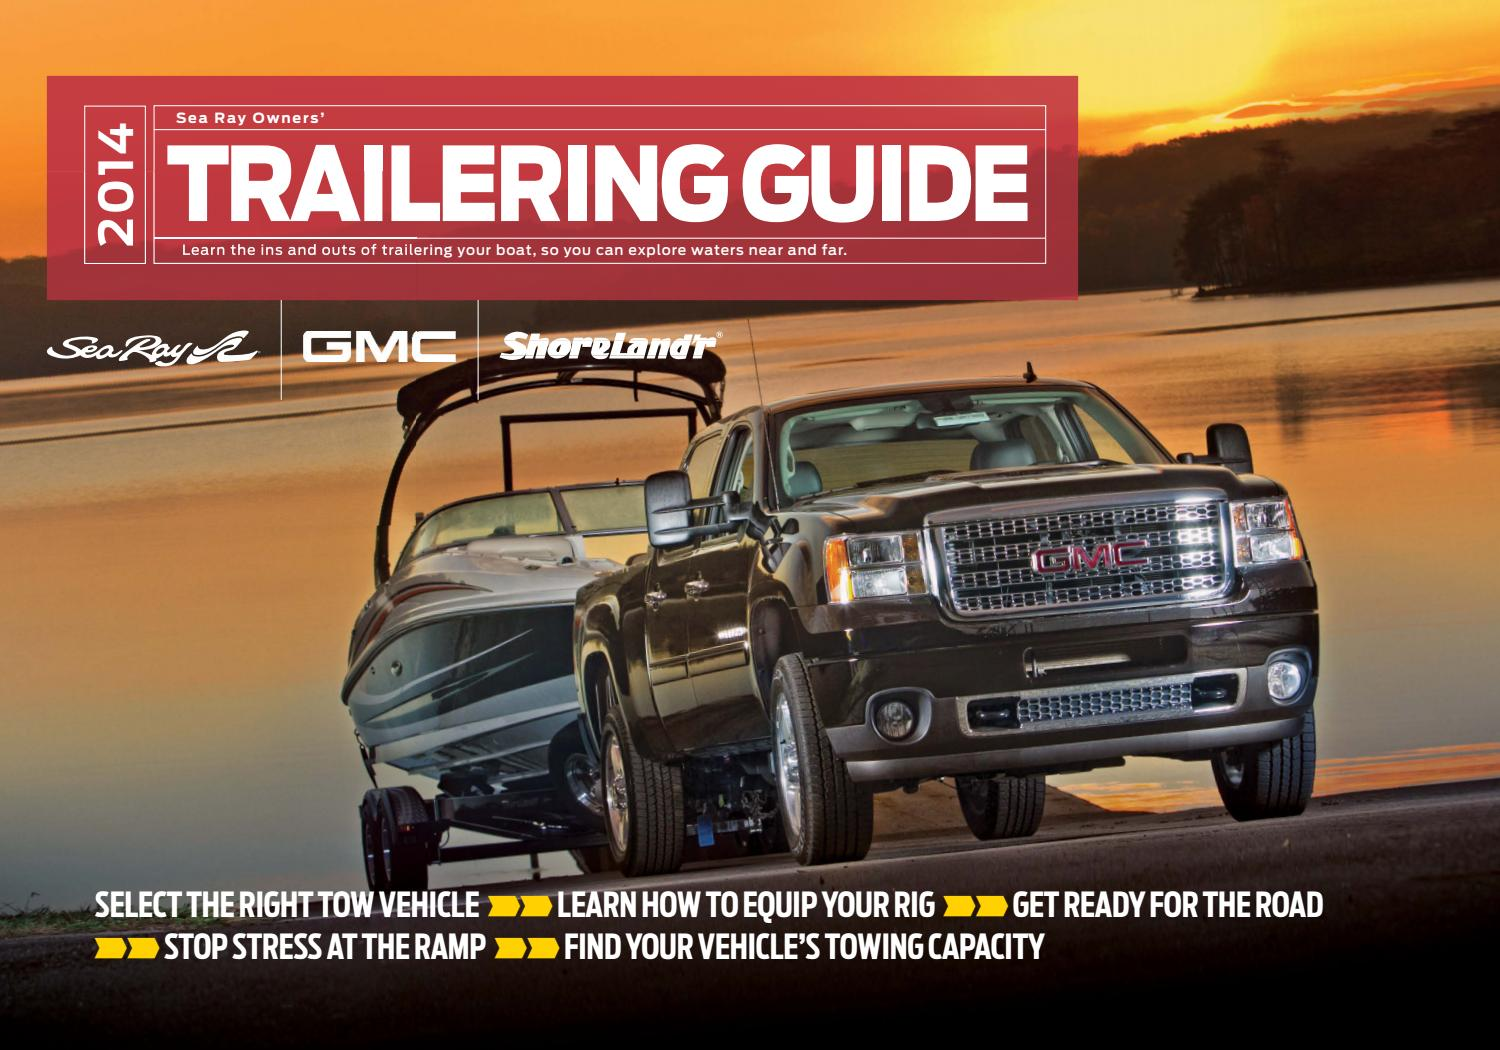 Sea ray gmc trailering guide 2014 by dino publishing issuu publicscrutiny Images